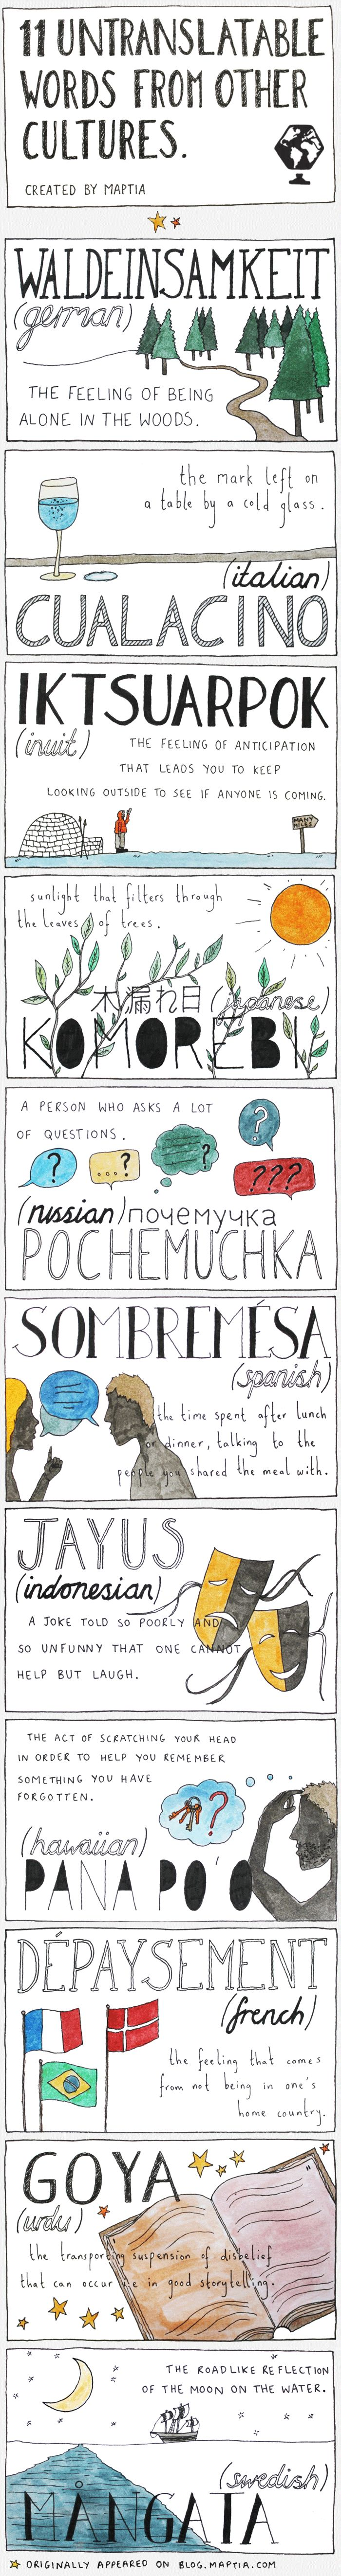 11 untranslatable words from other cultures.